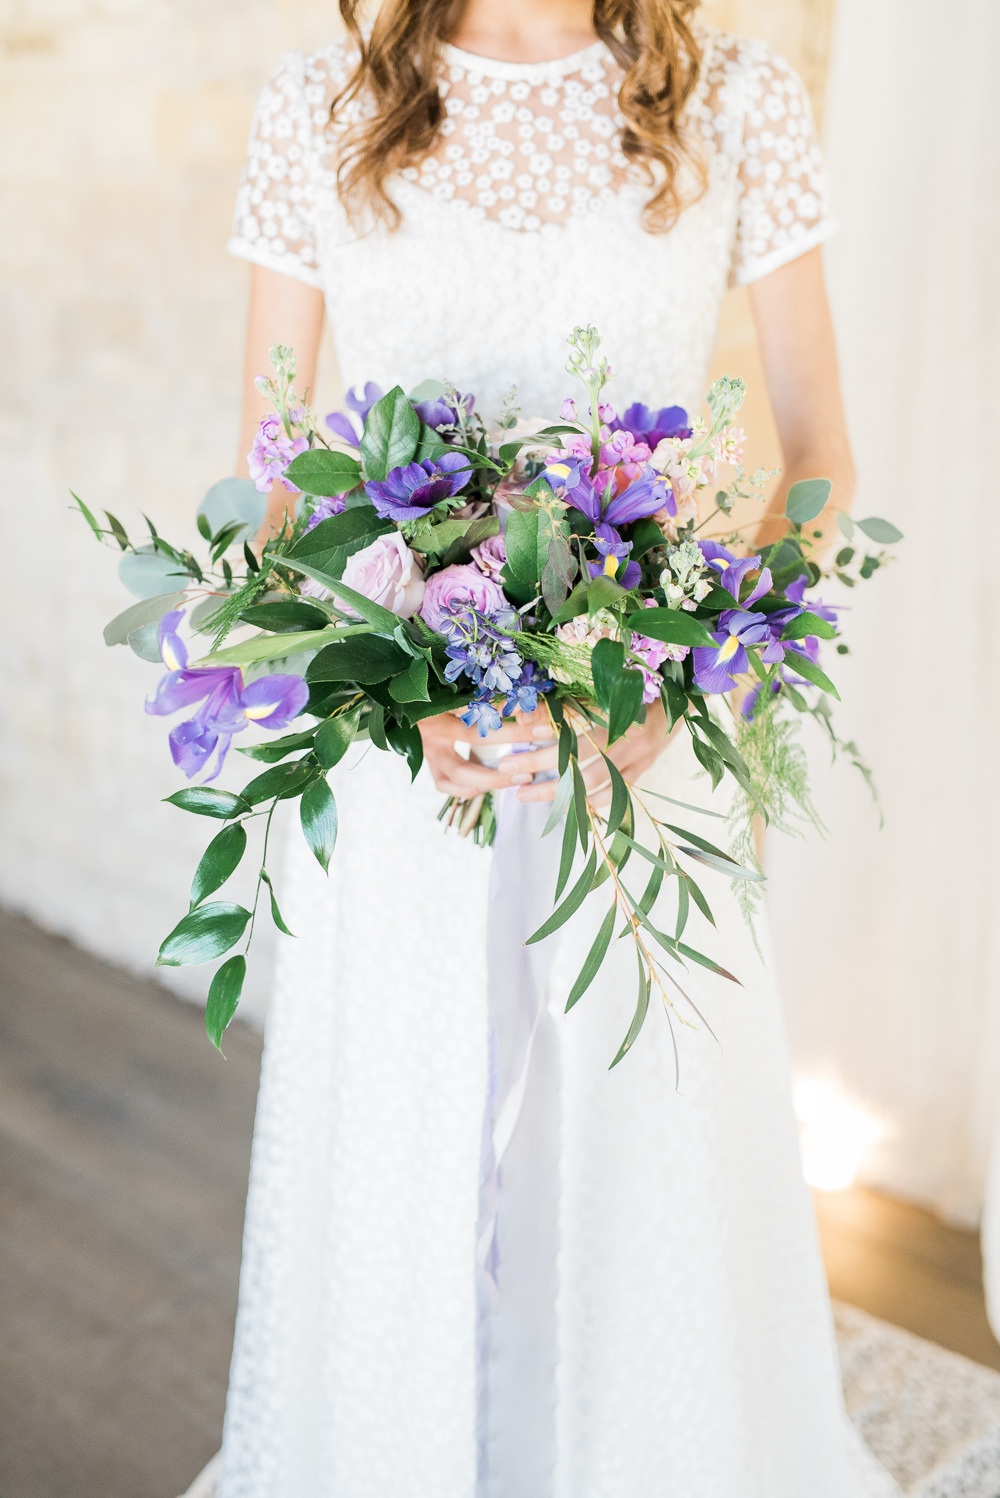 Bouquet Flowers Bride Bridal Purple Lilac Iris Rose Greenery Foliage Silk Ribbons Ultra Violet Wedding Moon Gate Flower Arch Captured by Katrina Photography